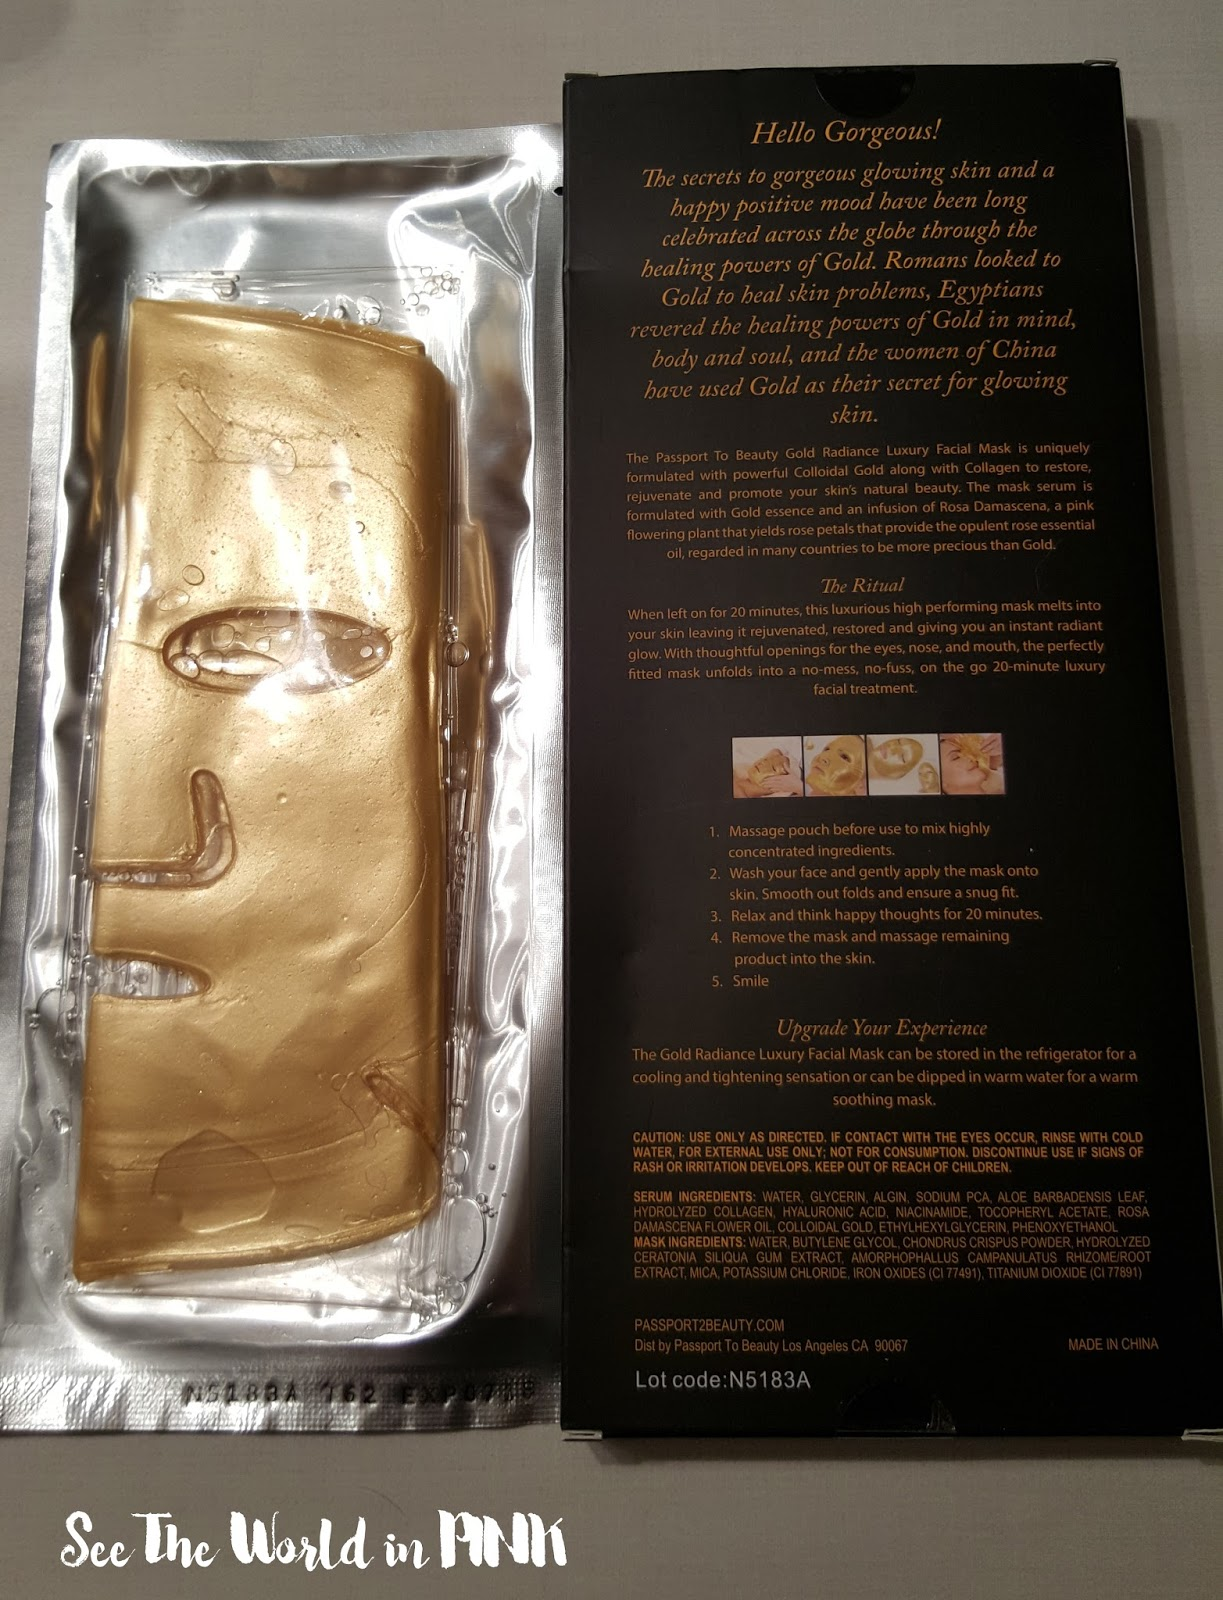 Passport to Beauty - Gold Radiance Luxury Facial Mask with Collagen and Rose Oil